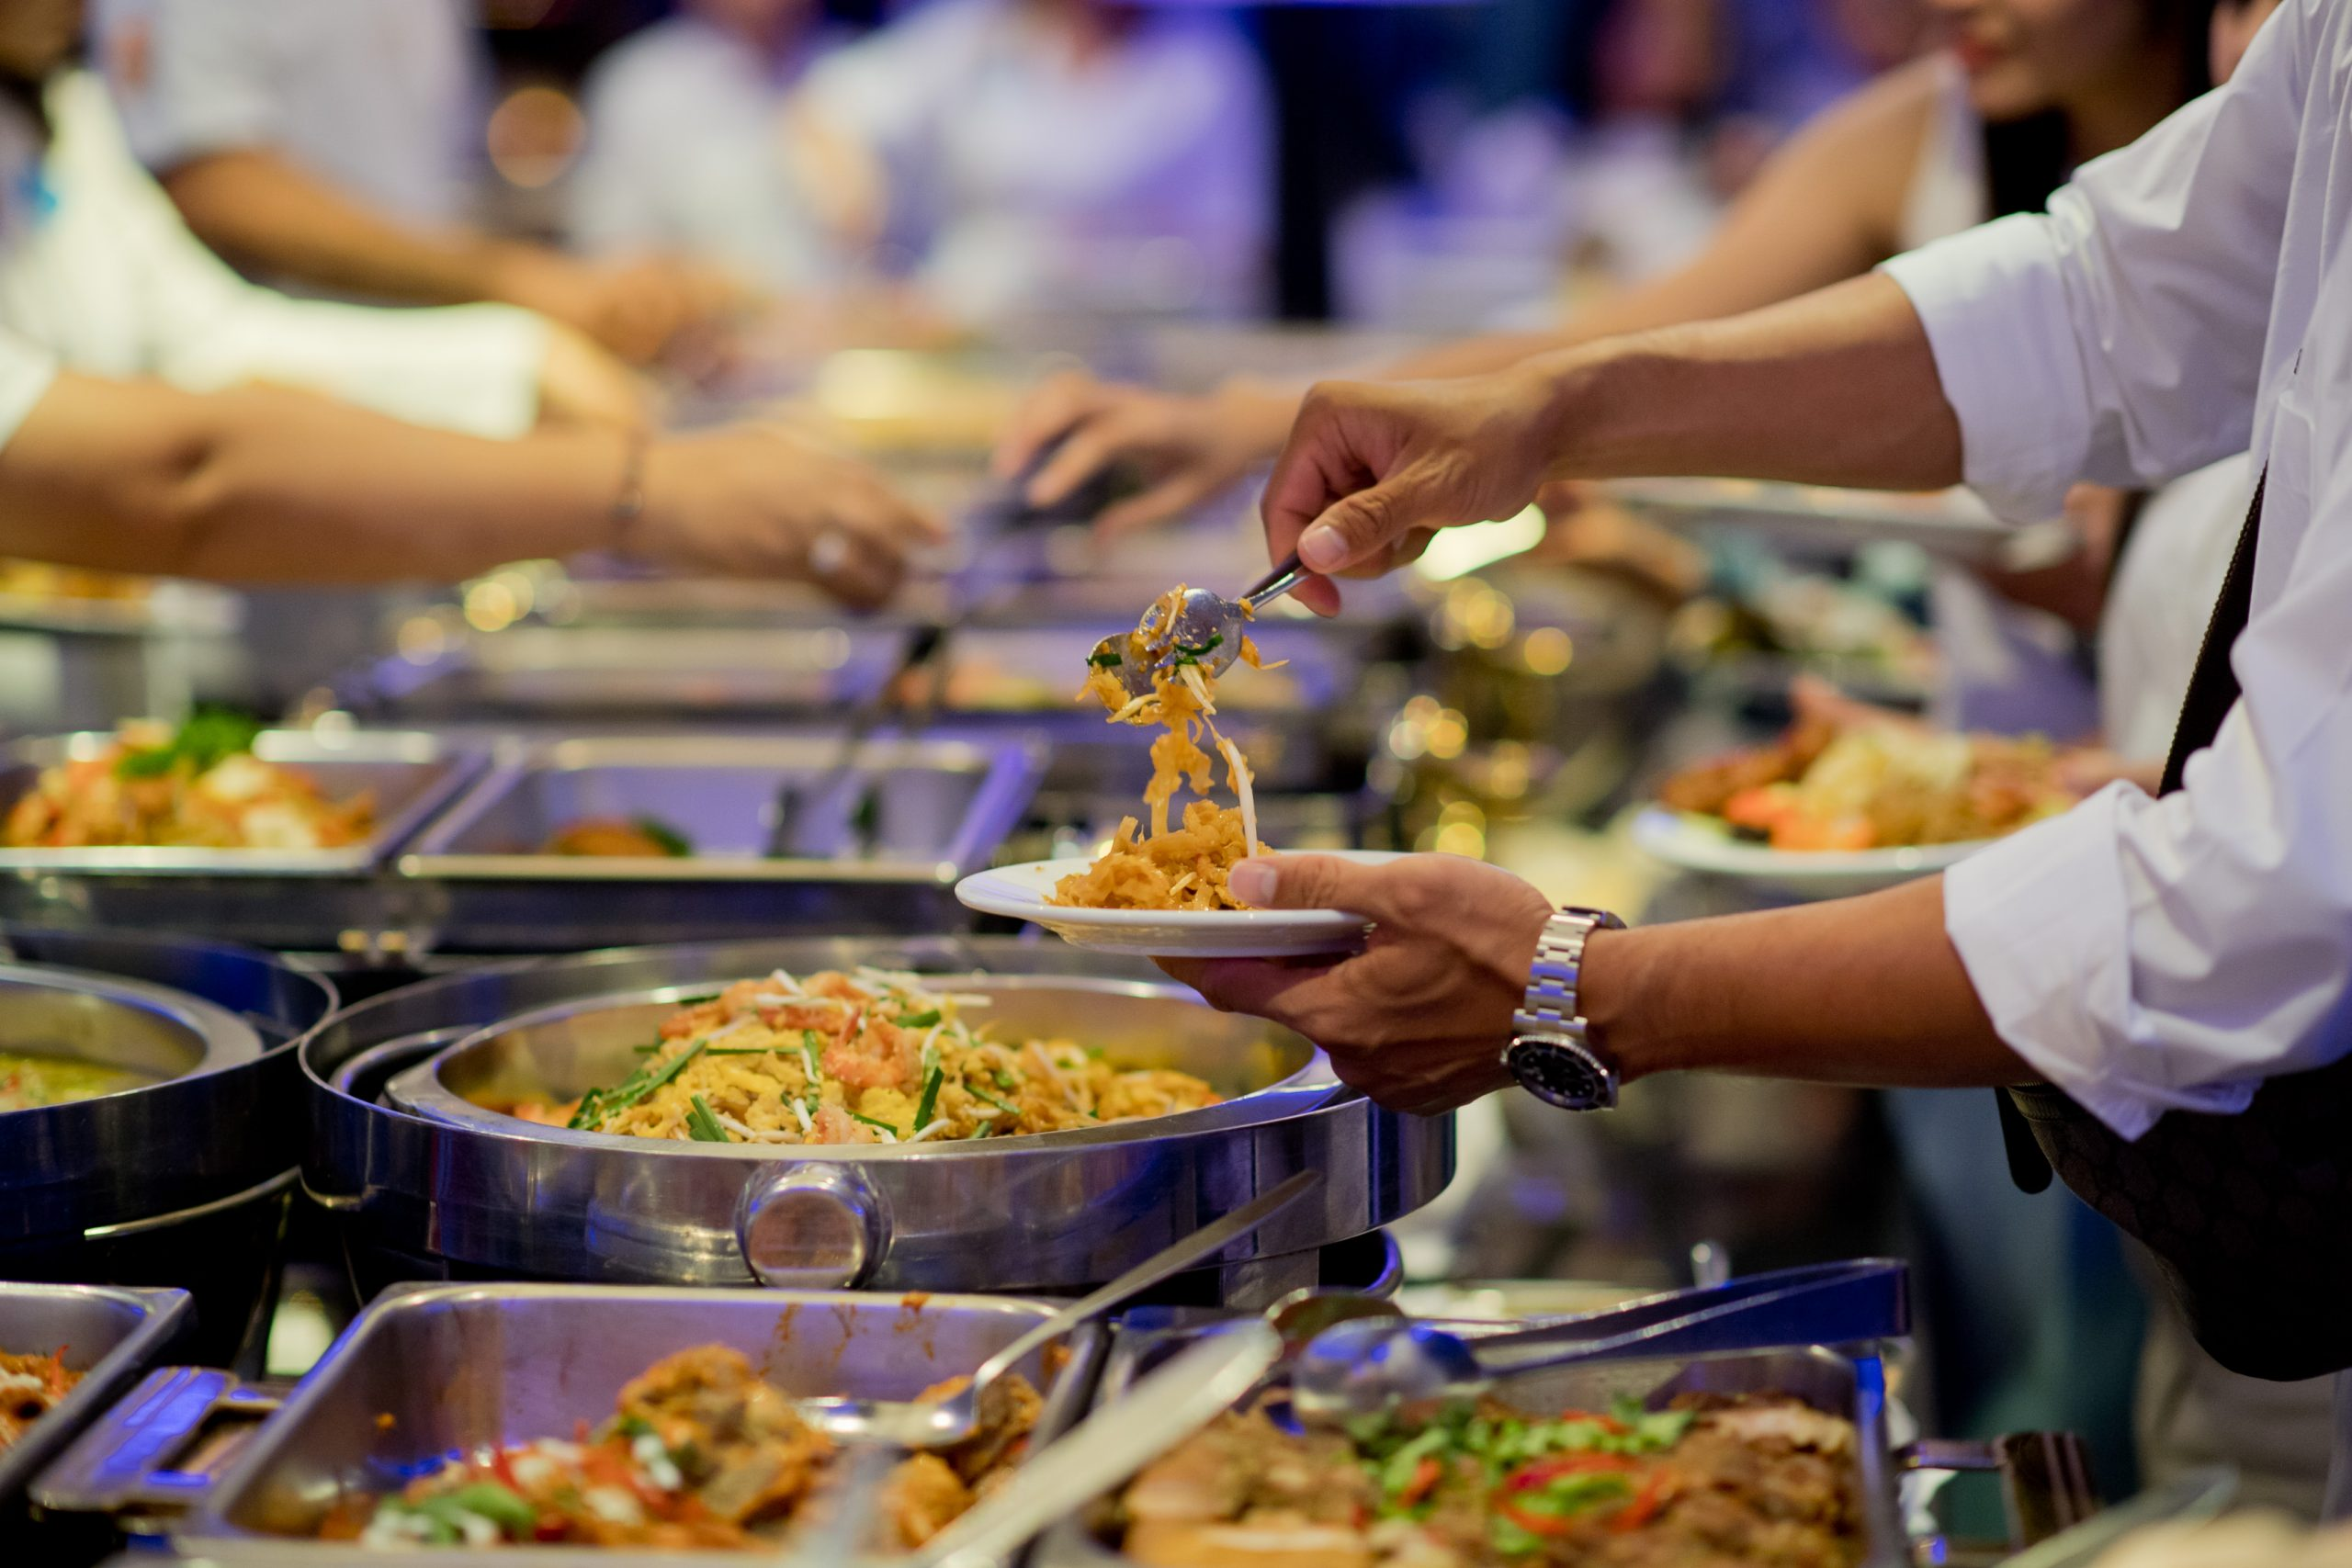 Scooping,The,Food.,Buffet,Food,At,Restaurant.,Catering,Food